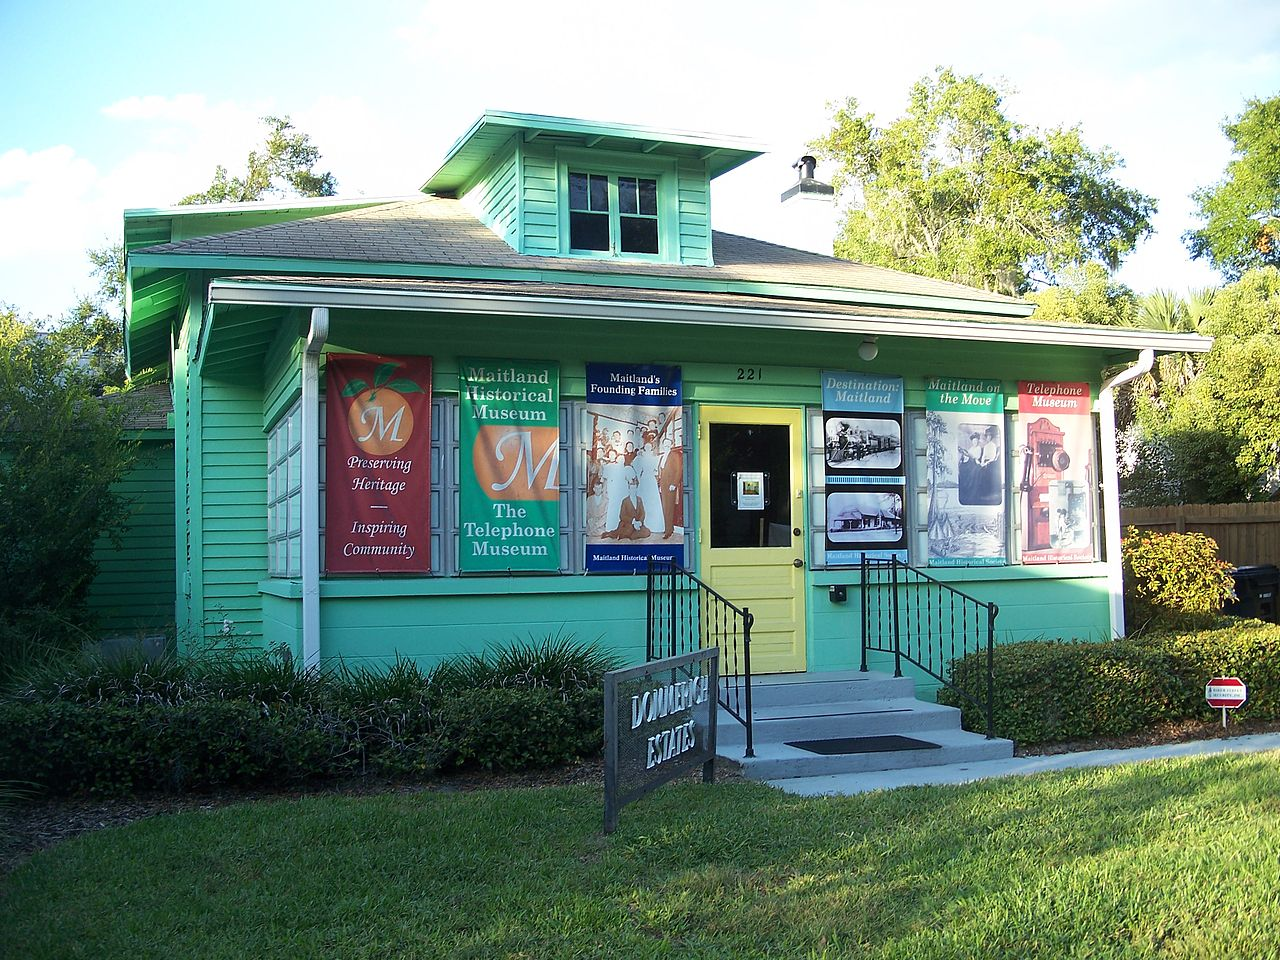 The Maitland Historical Society Museum